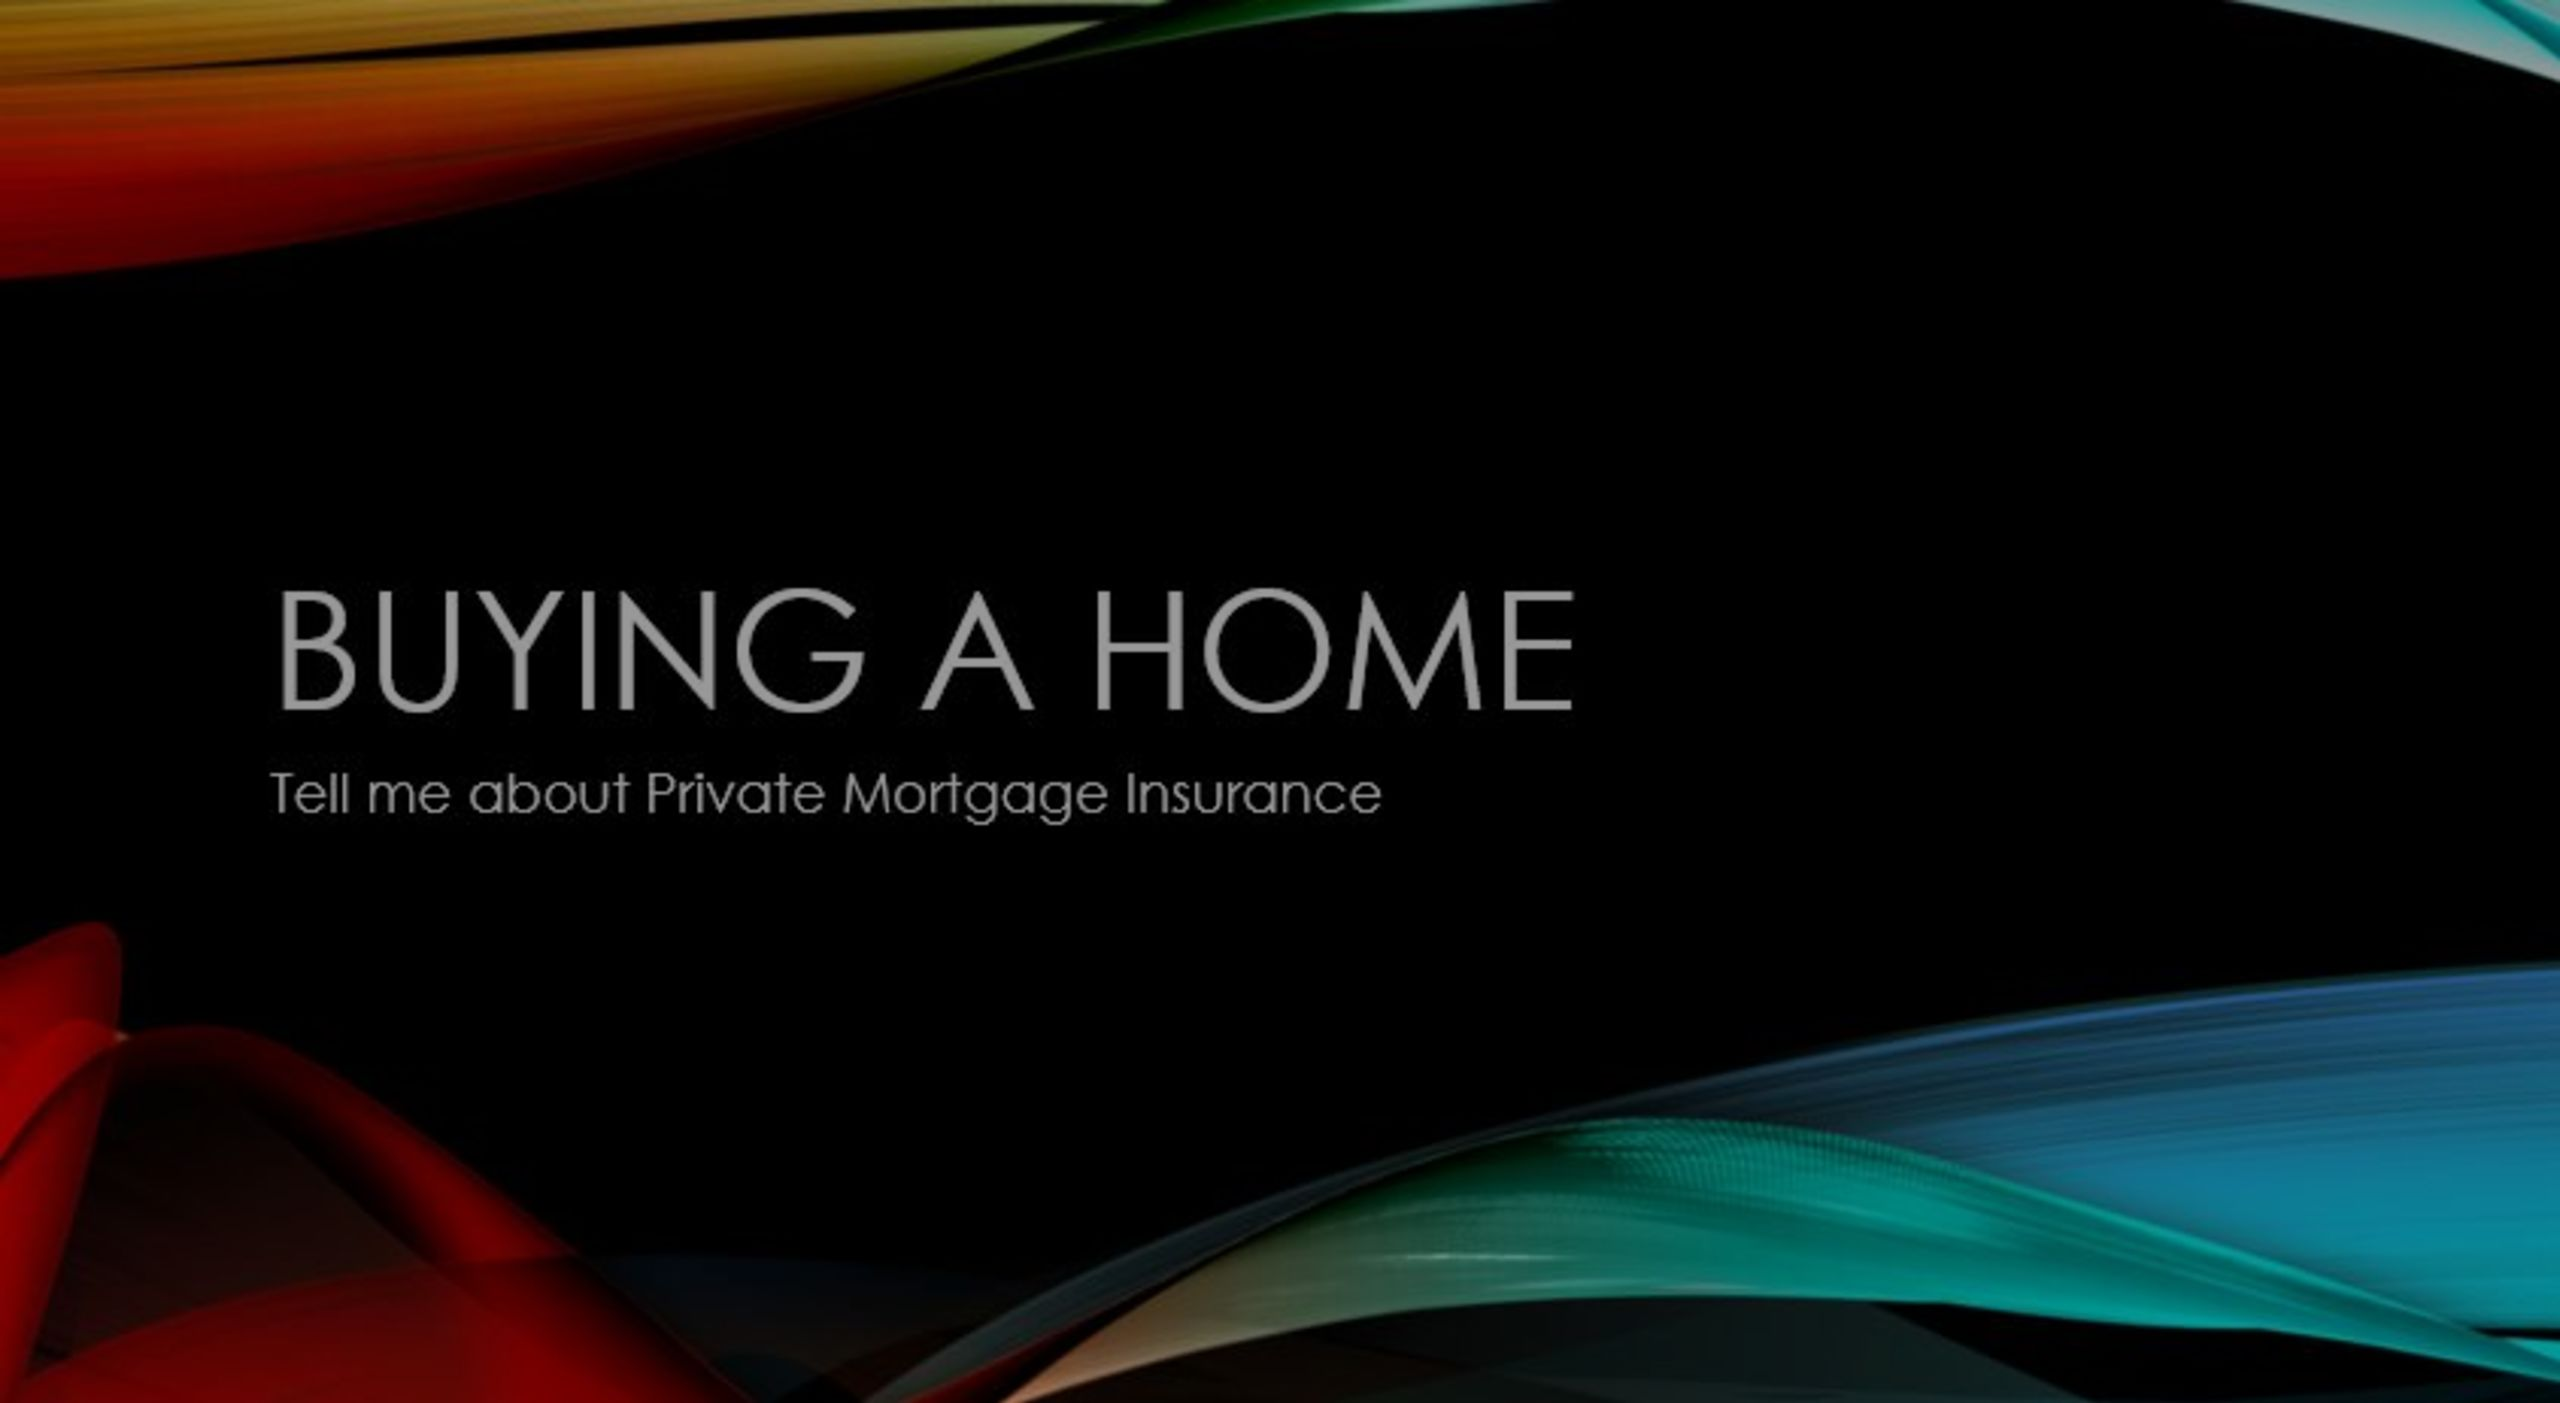 Learn about Private Mortgage Insurance